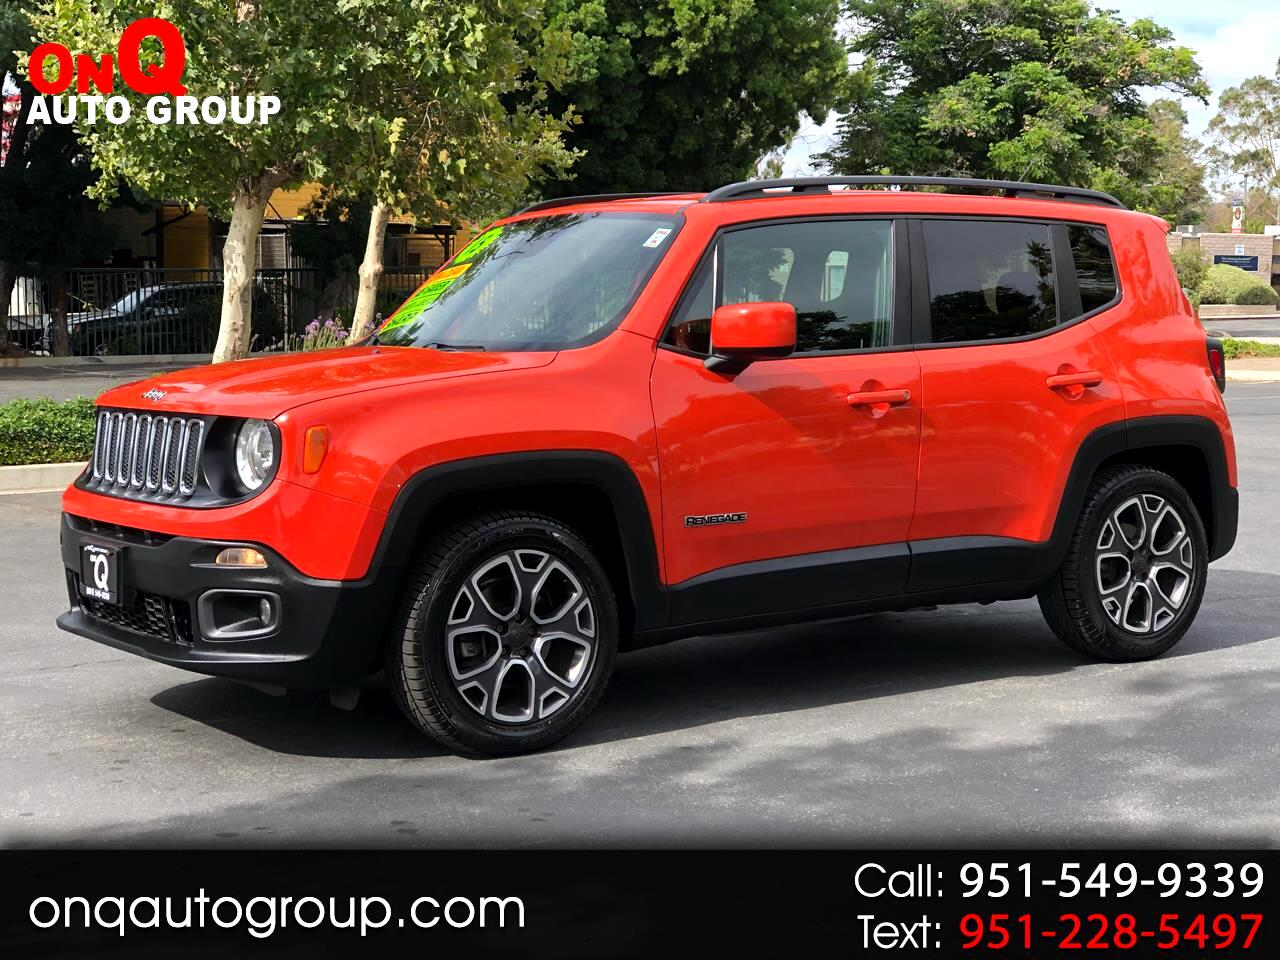 2015 Jeep Renegade FWD 4dr Latitude